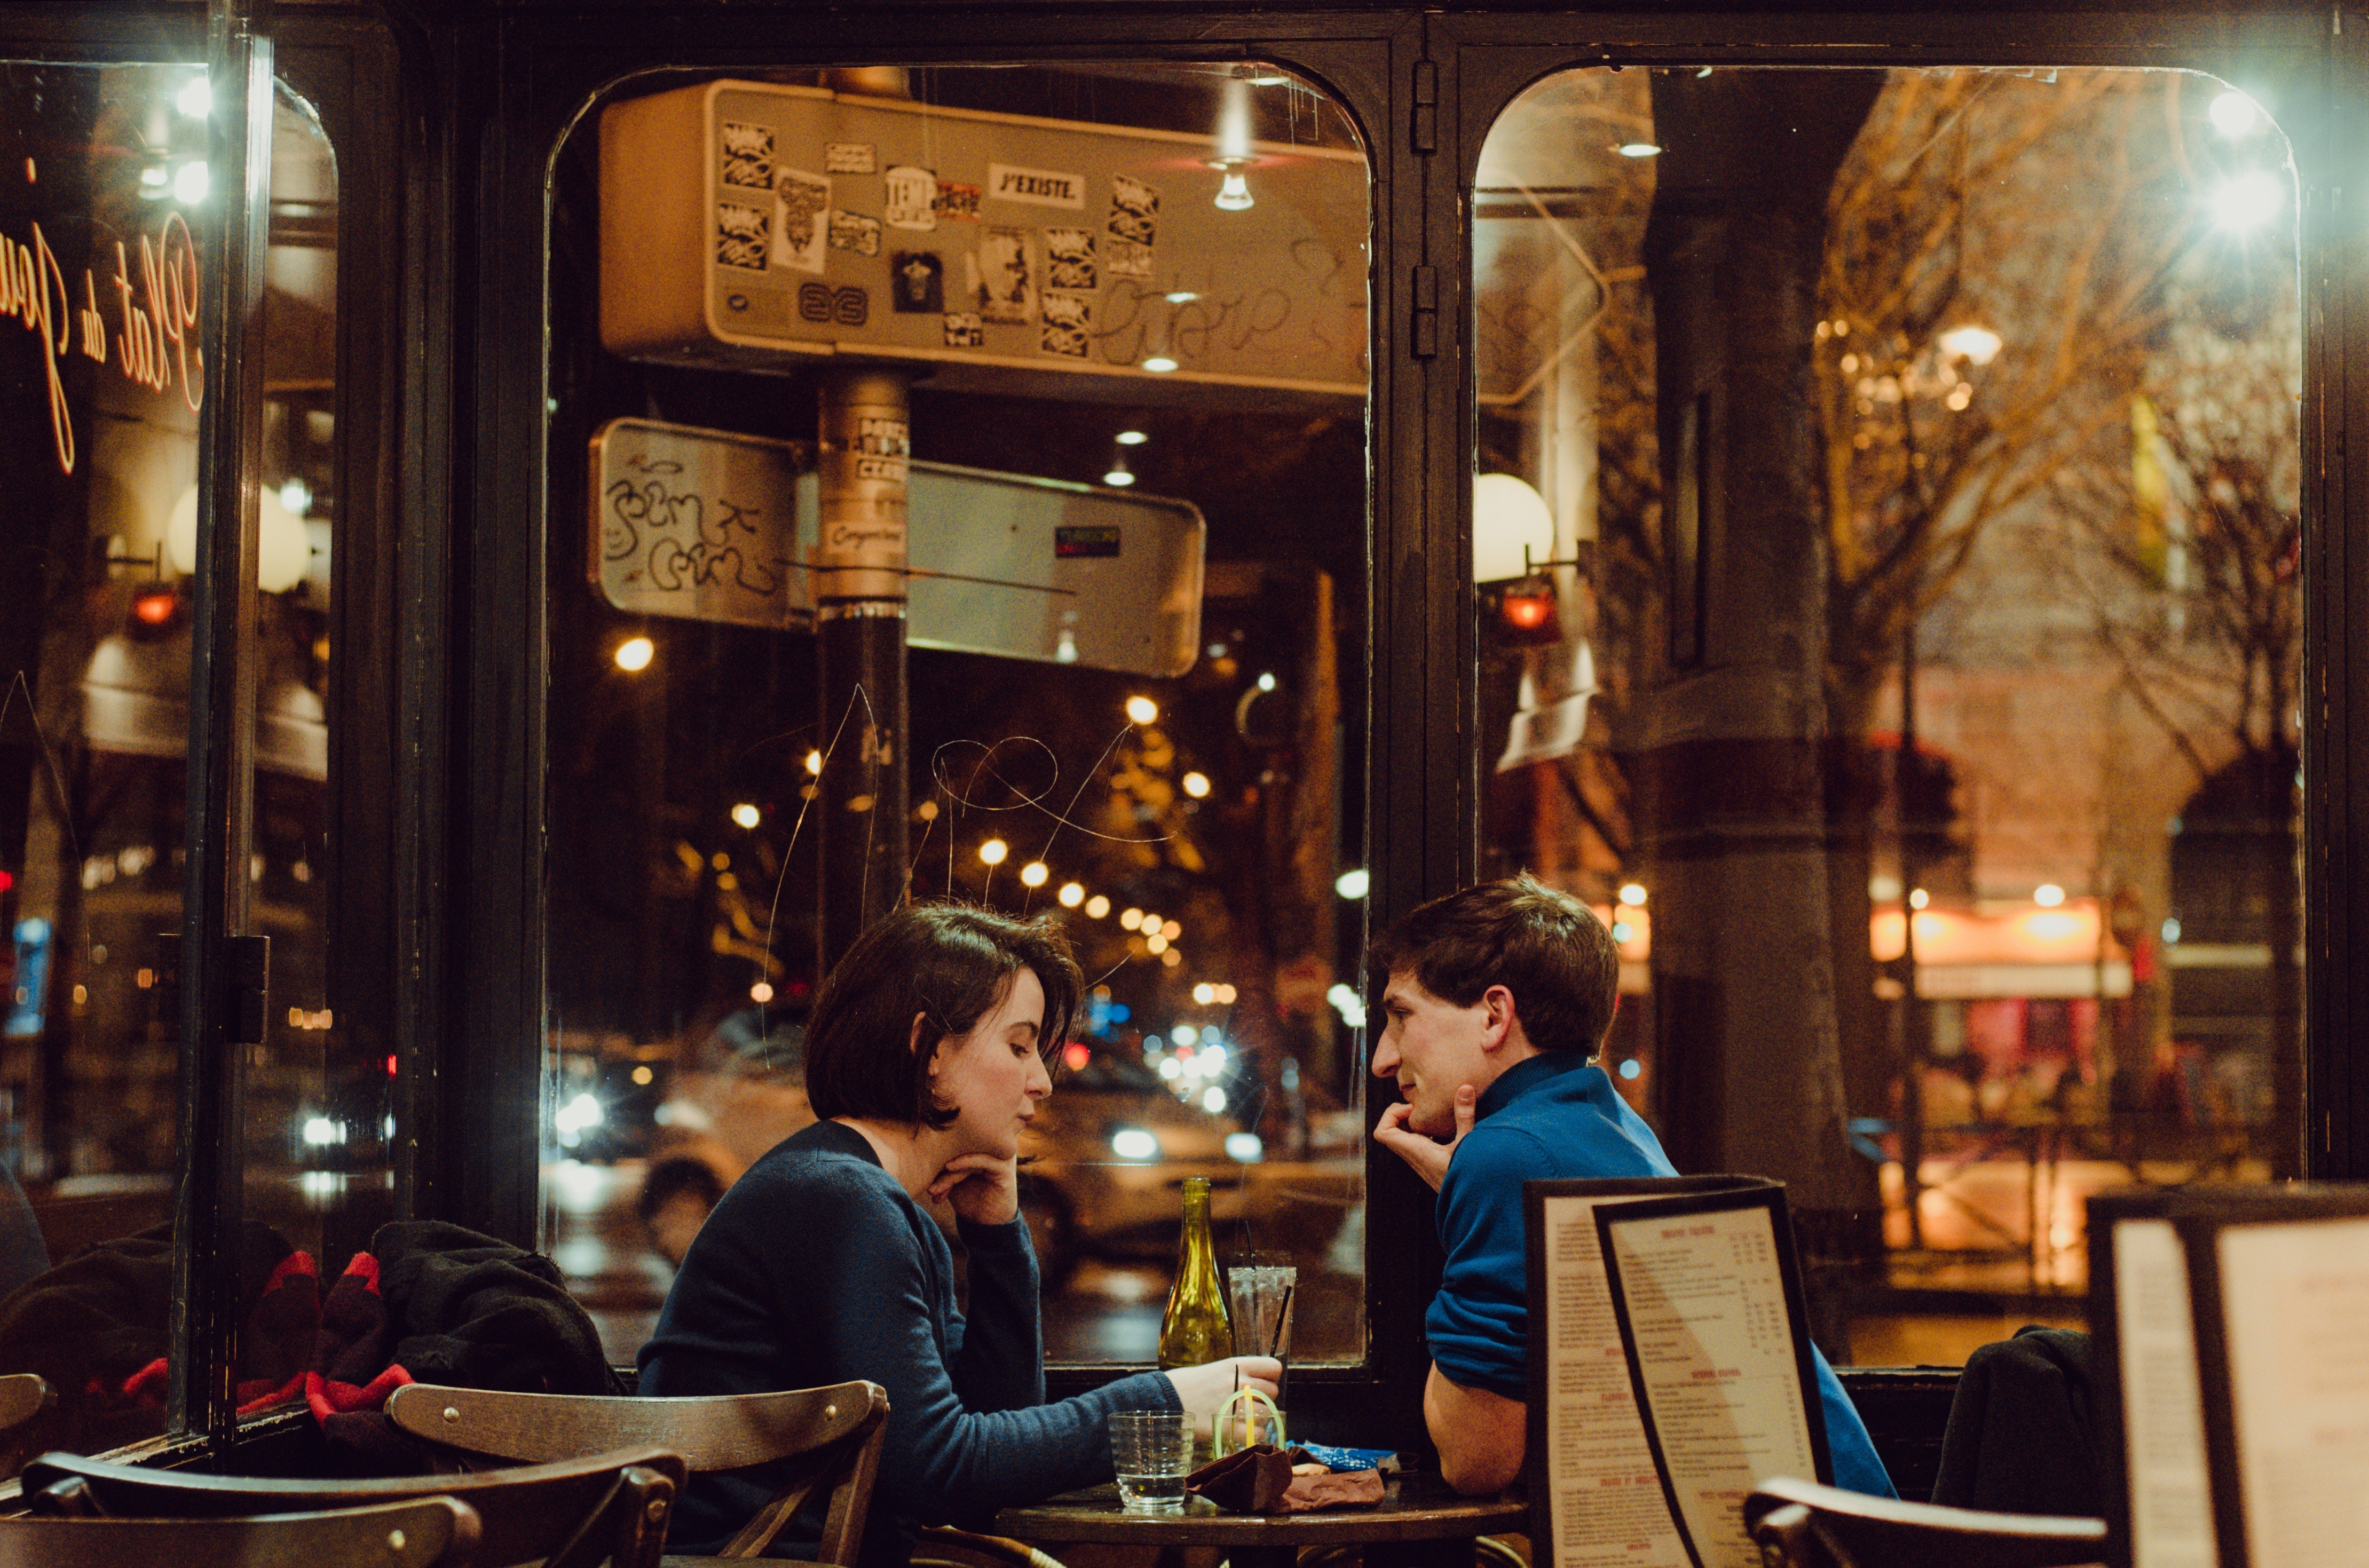 A girl and a guy on a date in a street side cafe in the night.